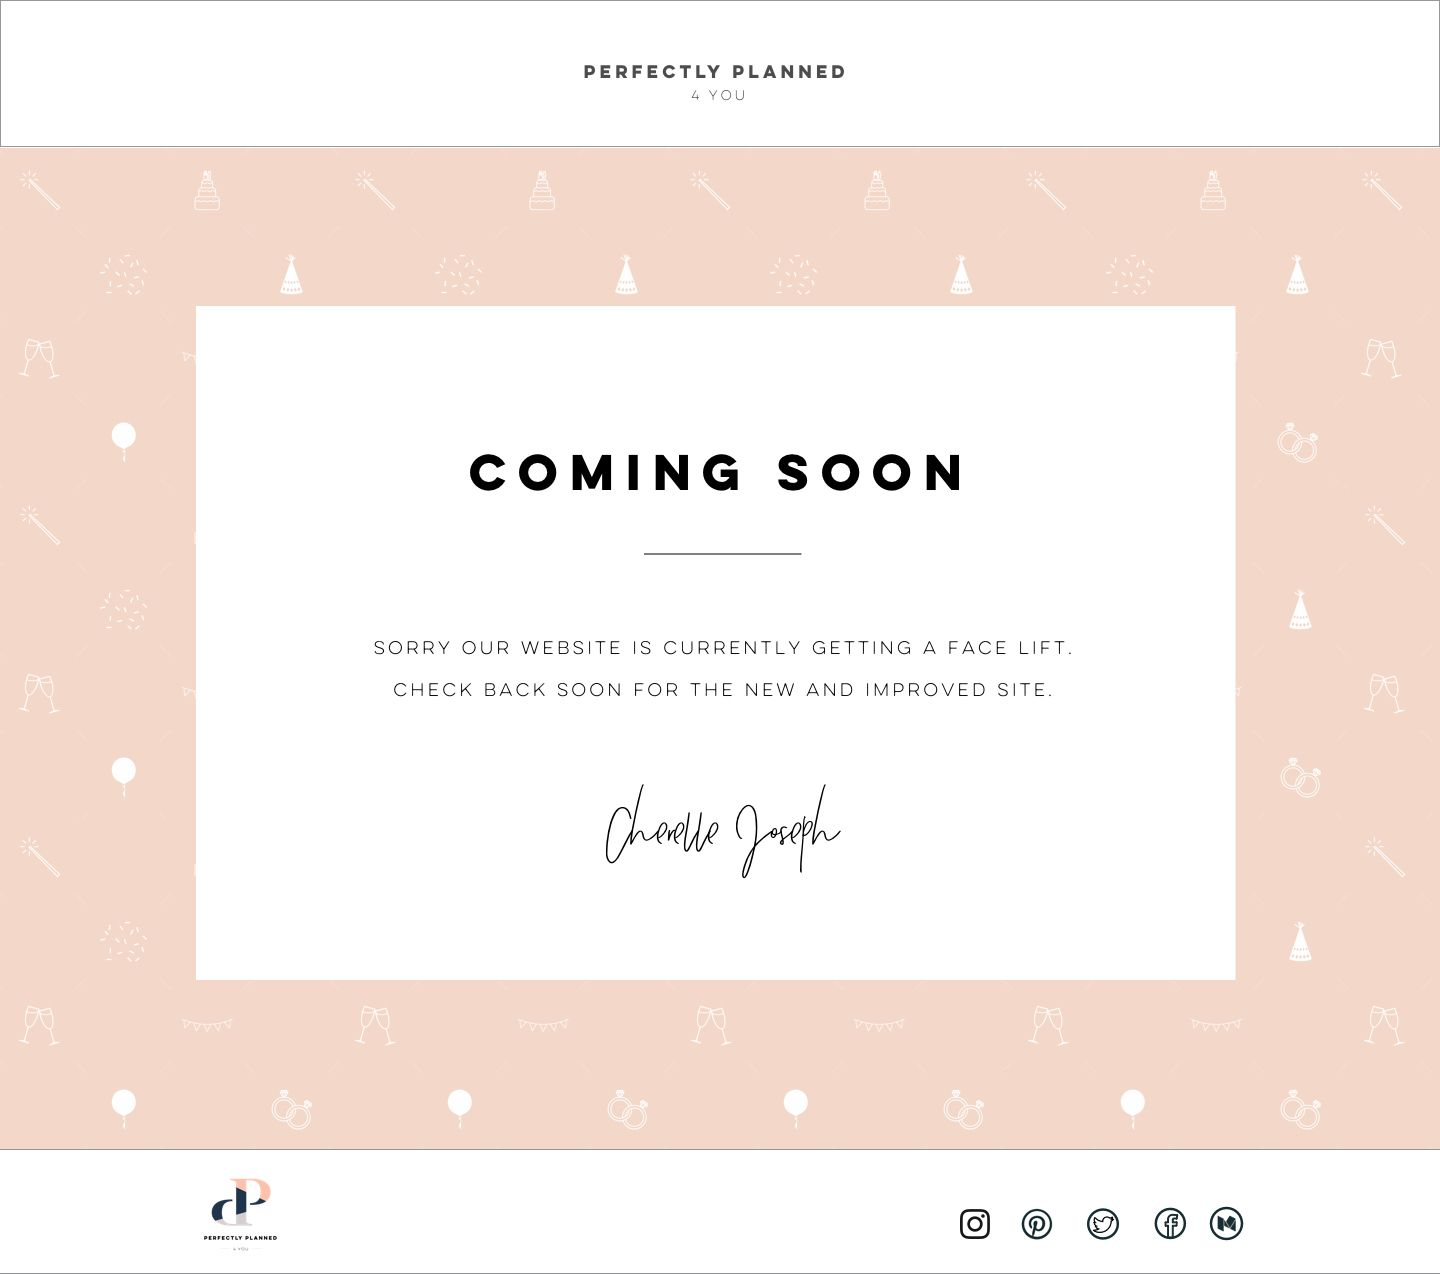 Website Design New Ideas: Coming Soon......looking Forward To Seeing The Perfectly